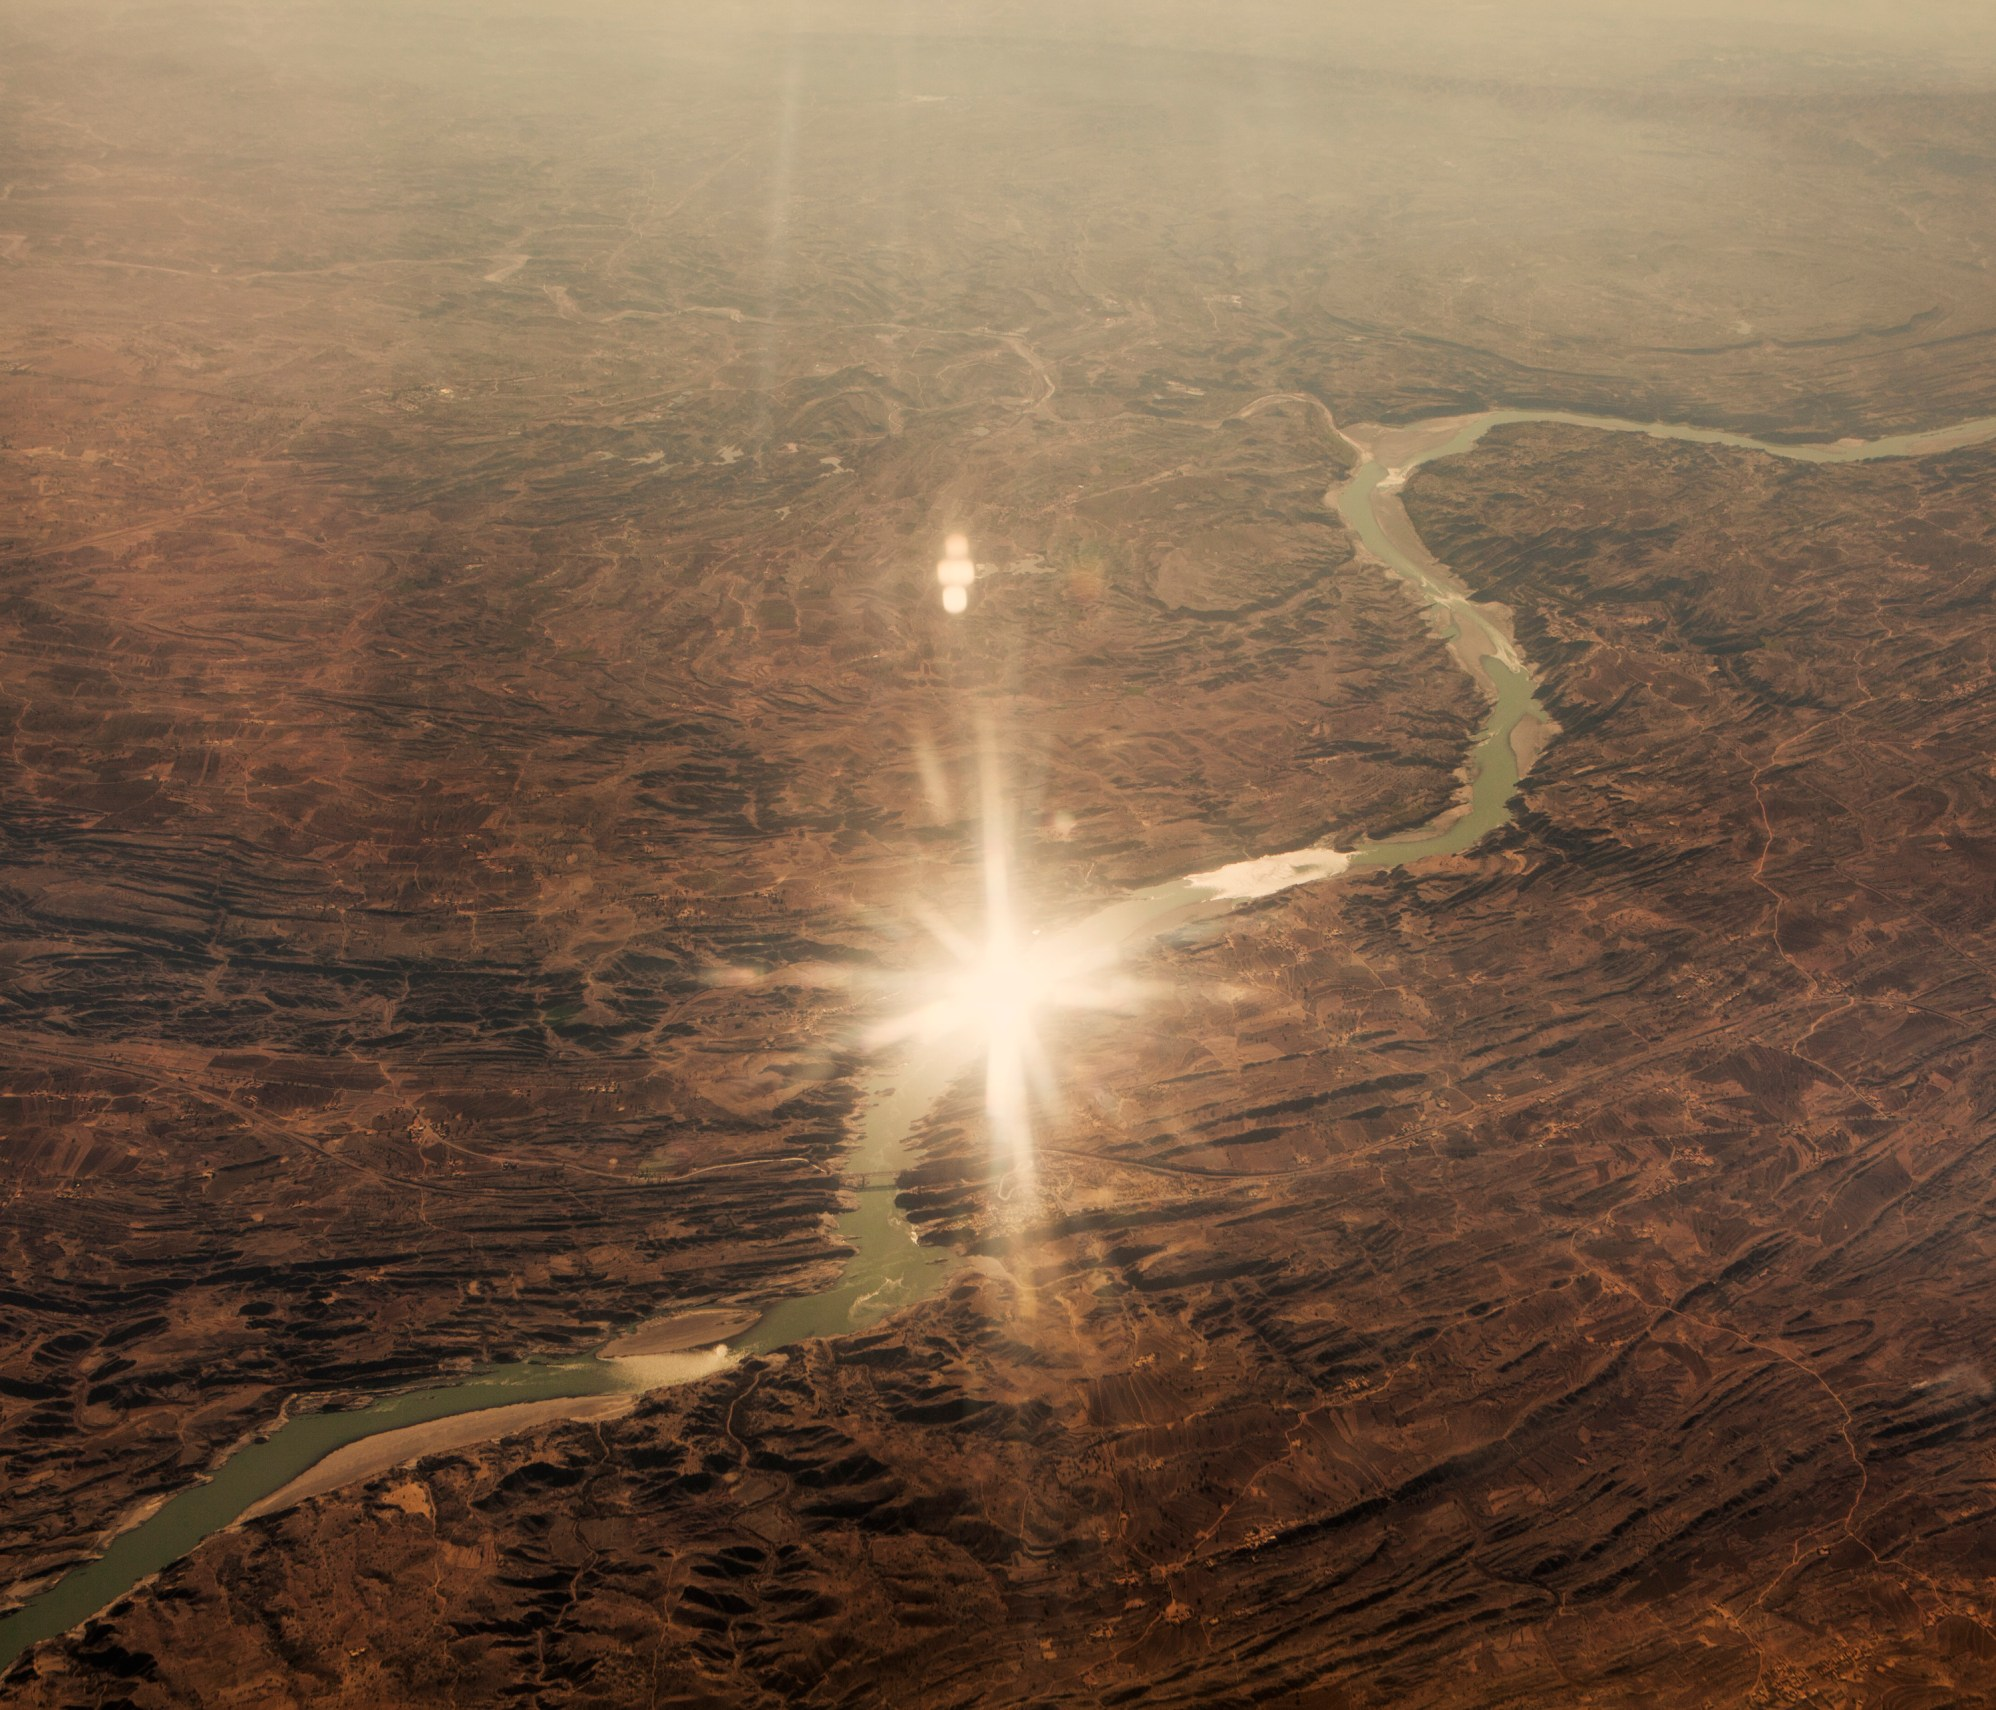 An aerial view of the Helmand River sparkling with reflected sunshine. In June 2011, President Obama announced his plan to begin the withdrawal of US troops from Afghanistan, but there is currently no end date for the war in the troubled country. Helmand is the largest province in Afghanistan, and the heart of the war against terror. Commanders on the ground have described the situation as the most brutal conflict the British Army has been involved in since the Korean War. Much of the fighting between NATO and Taliban forces is taking place in this province and Helmand is a true Taliban stronghold. The Helmand River flows through the mainly desert region. With these images I am trying to show a softer side to this troubled area of Afghanistan.